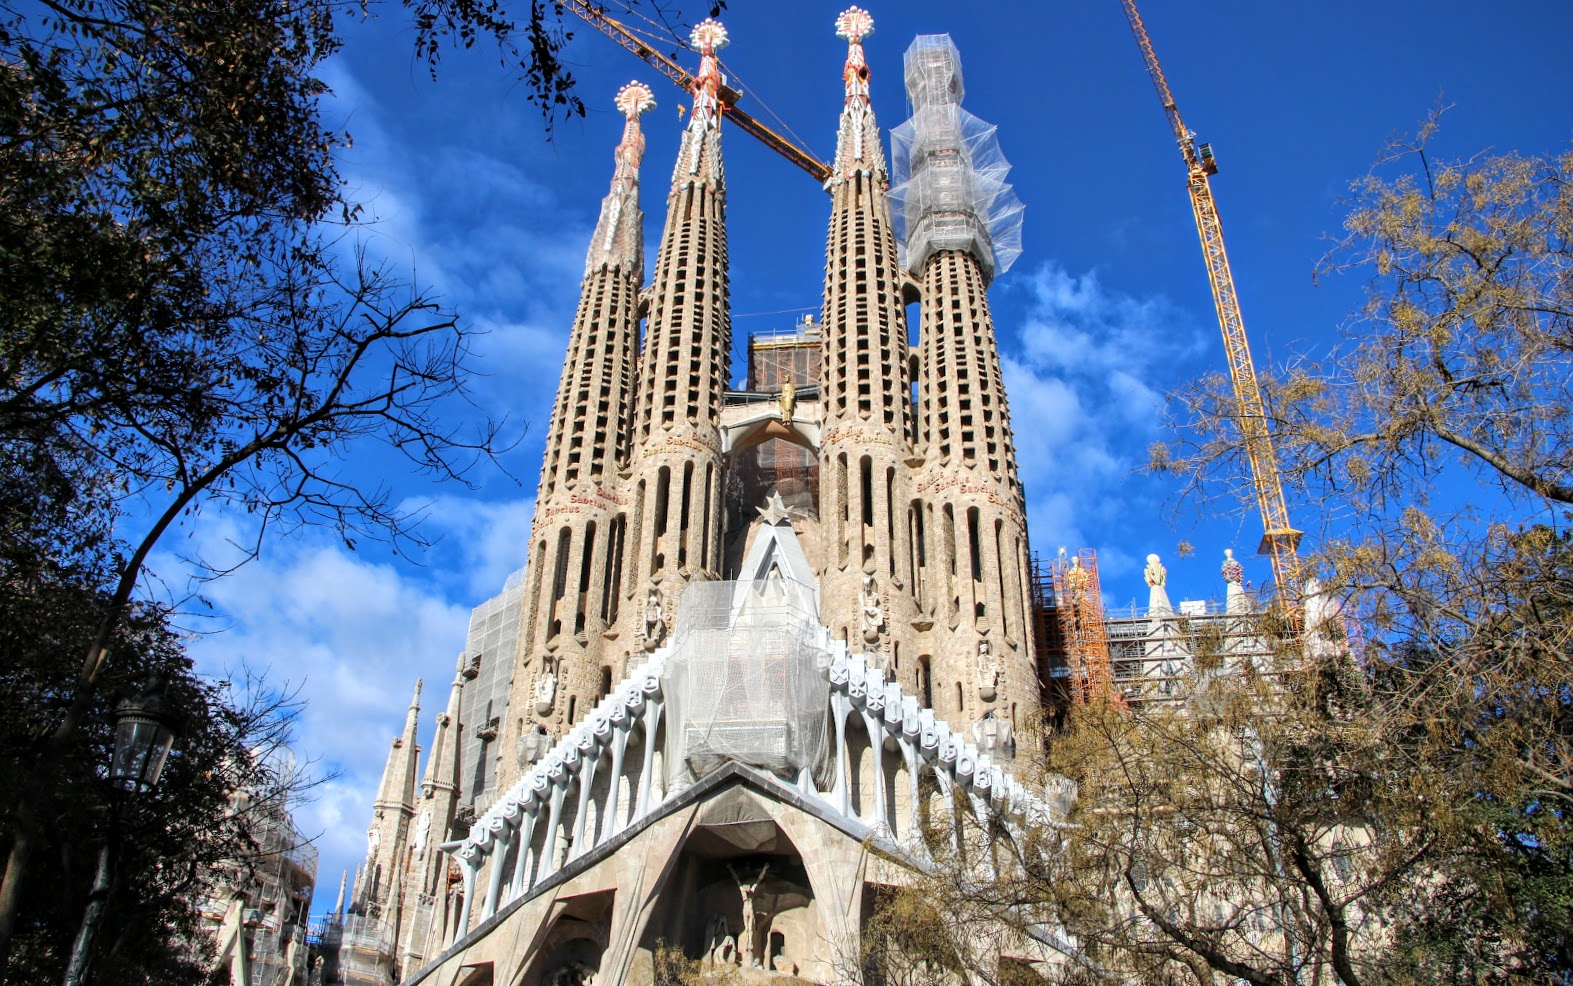 Architect Architecture By Bike Pedaling Your Own Gaudi Bike Tour In